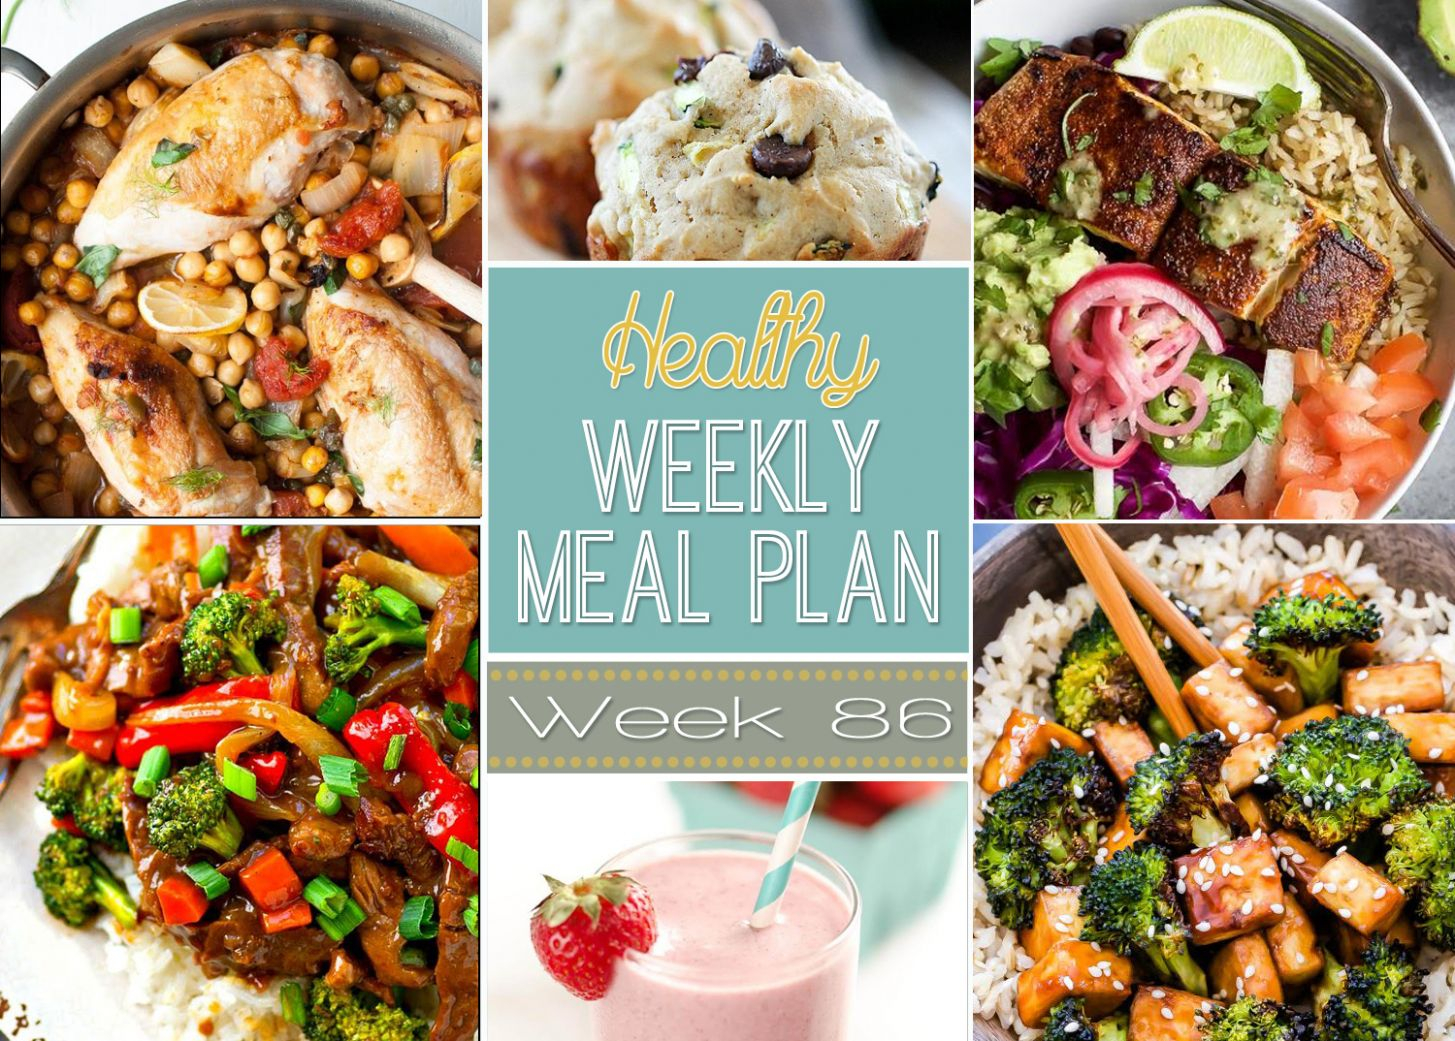 Healthy Weekly Meal Plan - Healthy Recipes Your Man Will Love